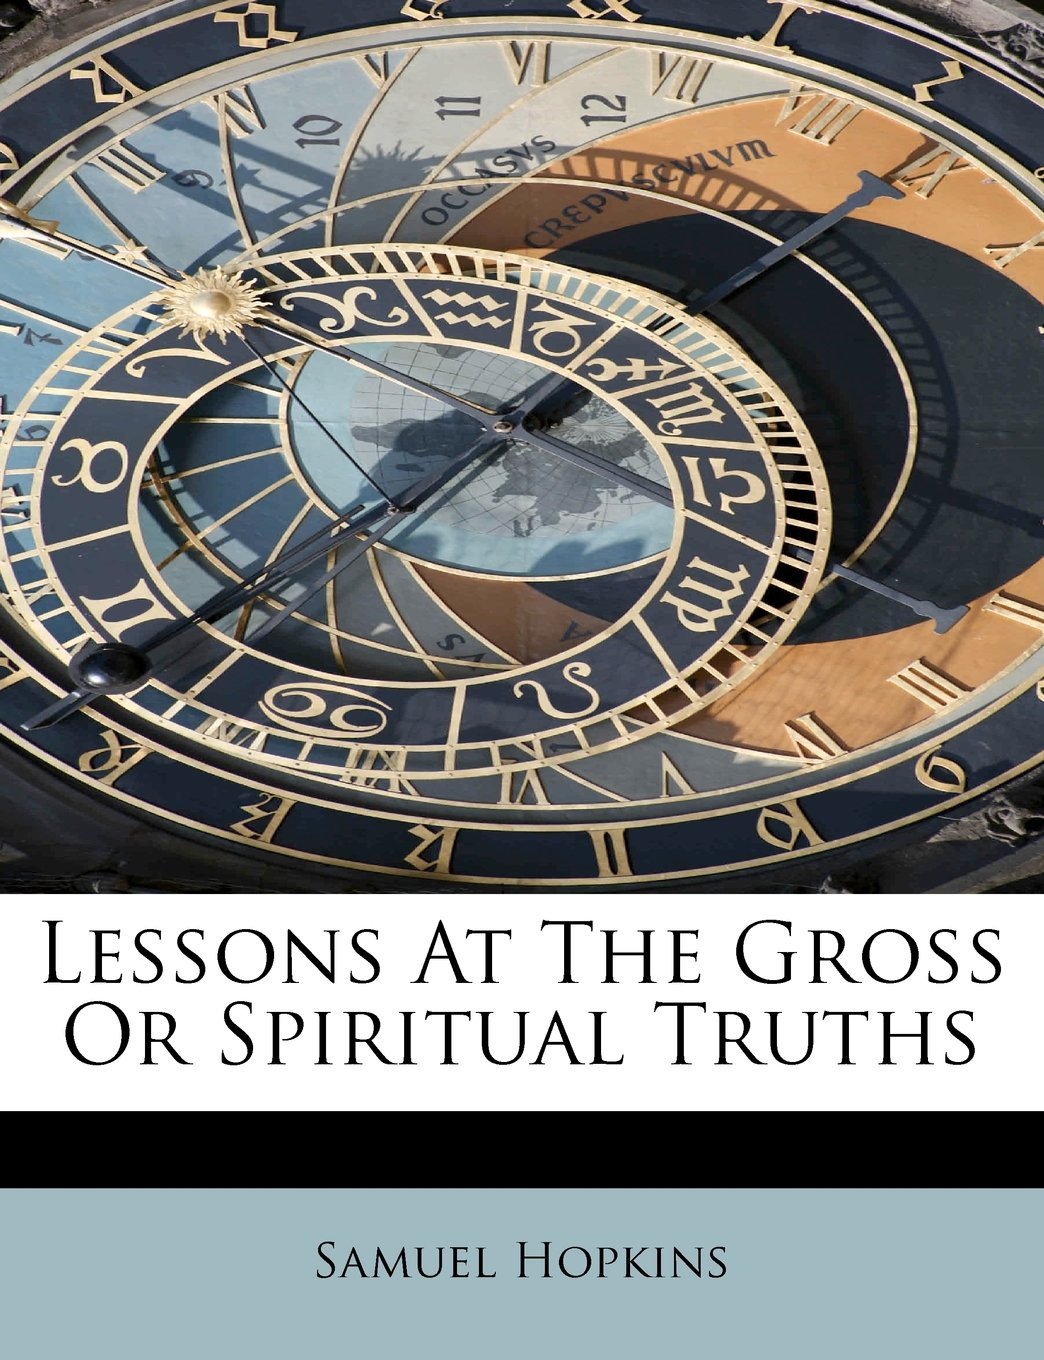 Download Lessons At The Gross Or Spiritual Truths pdf